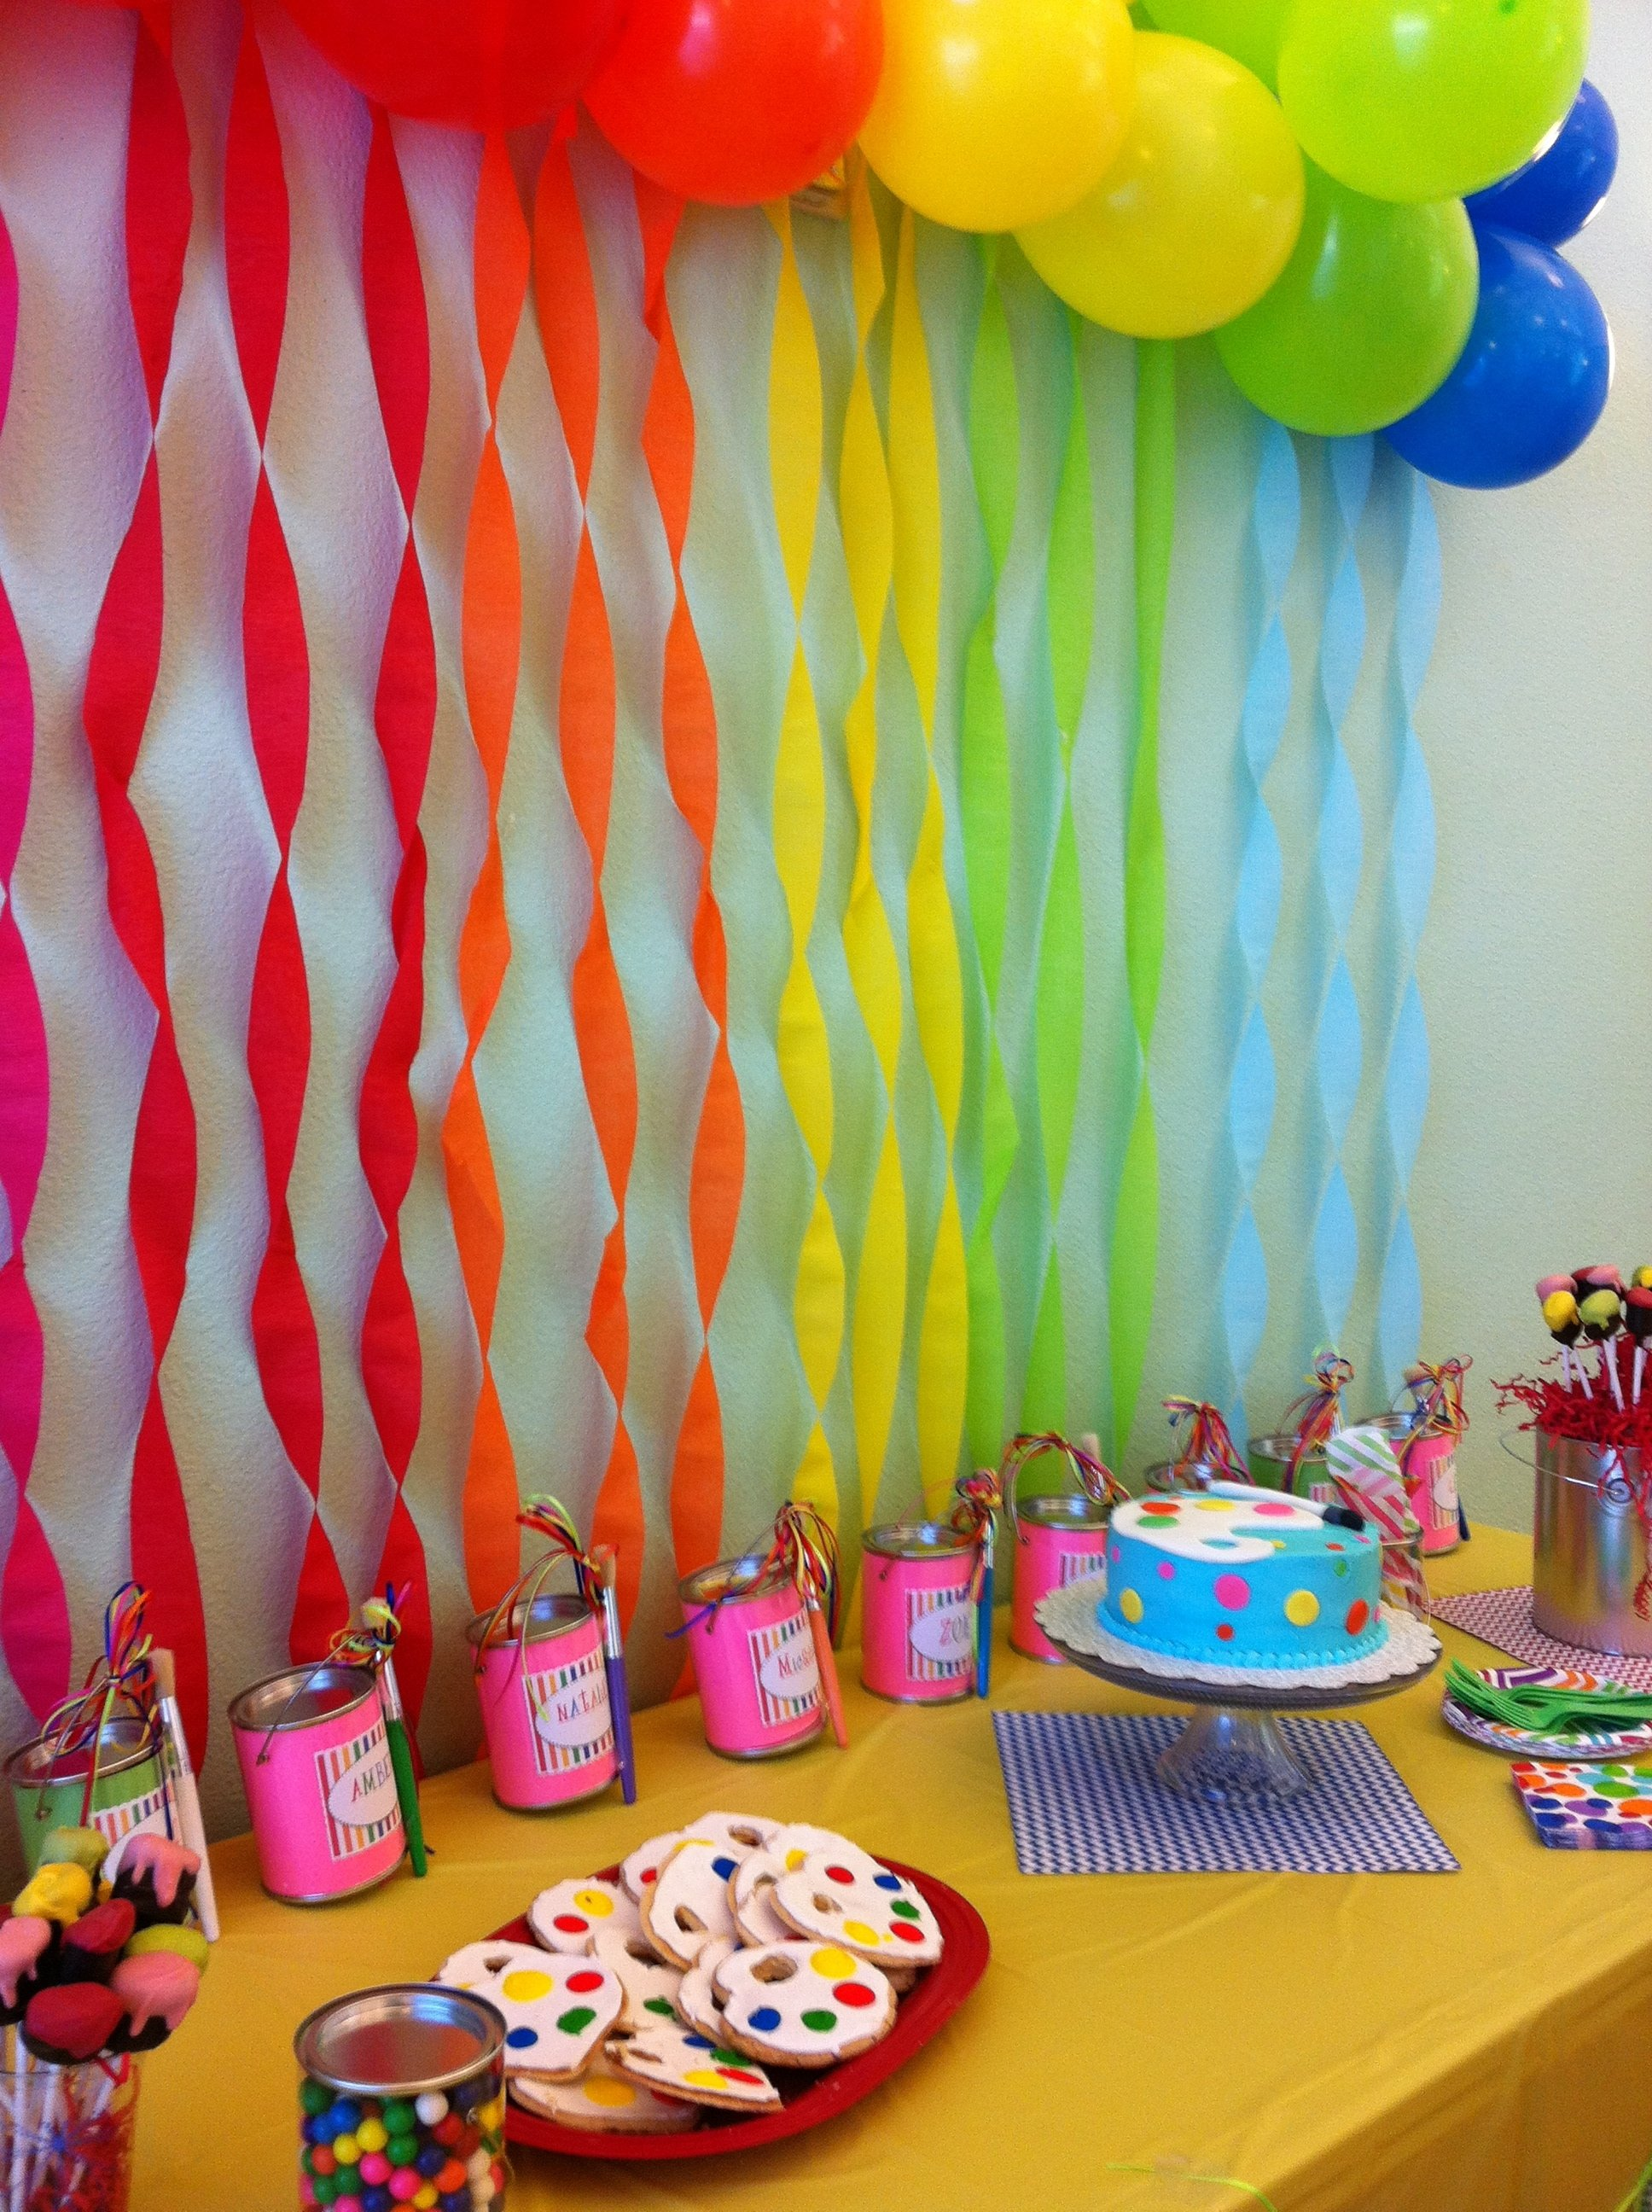 10 Lovable Birthday Ideas For A 1 Year Old 8 year old girl birthday art party art party pinterest art 15